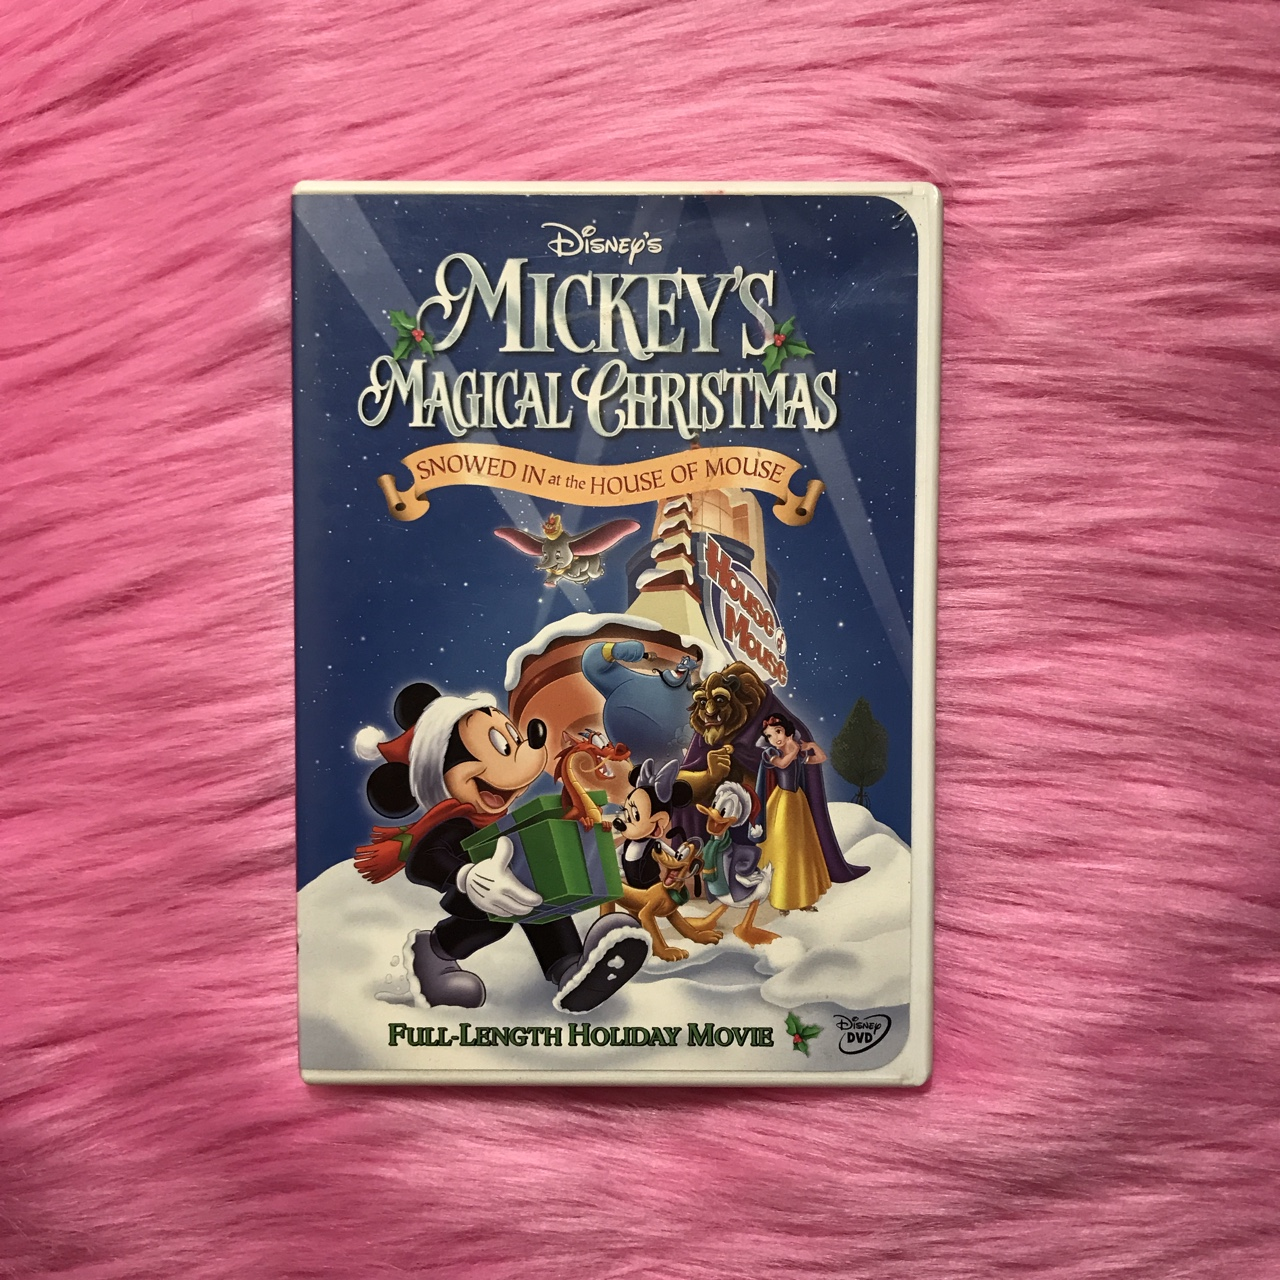 Mickeys Magical Christmas.Mickey S Magical Christmas Snowed In The House Of Depop